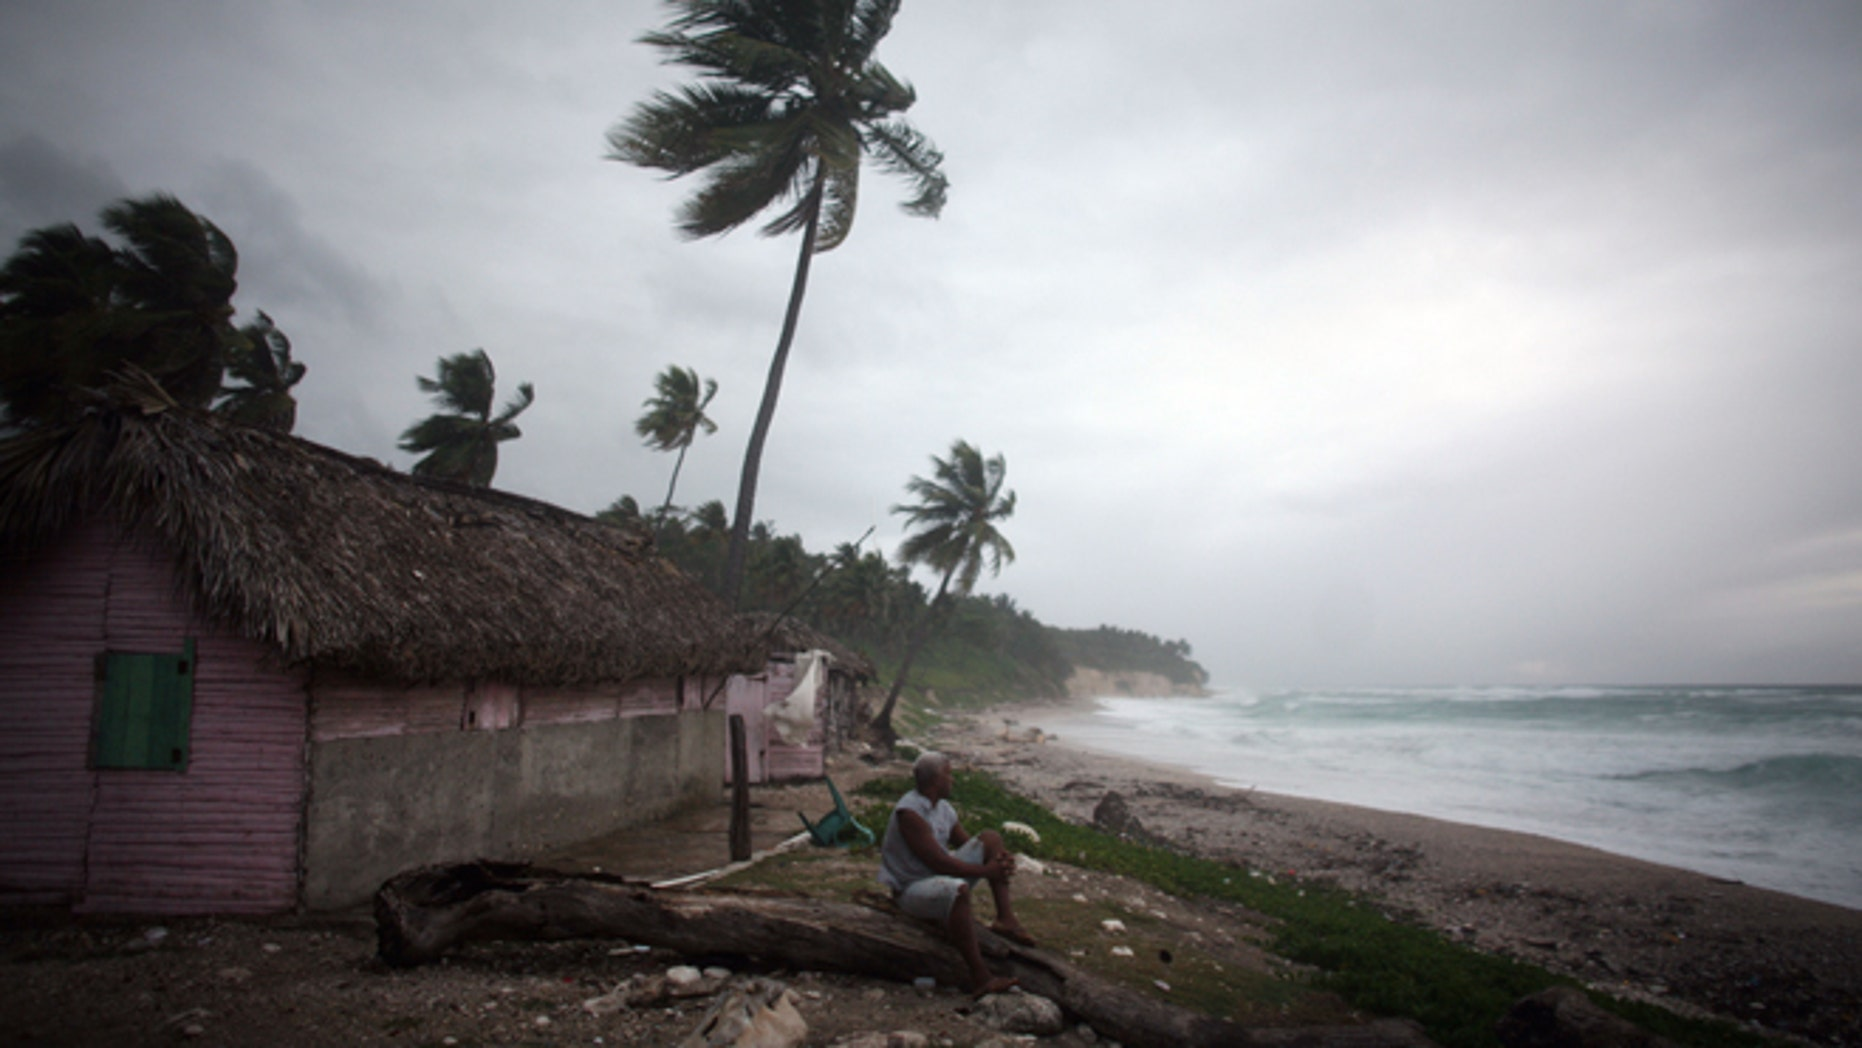 A man look out at the beach as Tropical Storm Isaac approaches in Barahona, Dominican Republic, Friday, Aug. 24, 2012.  (AP Photo/Ricardo Arduengo)